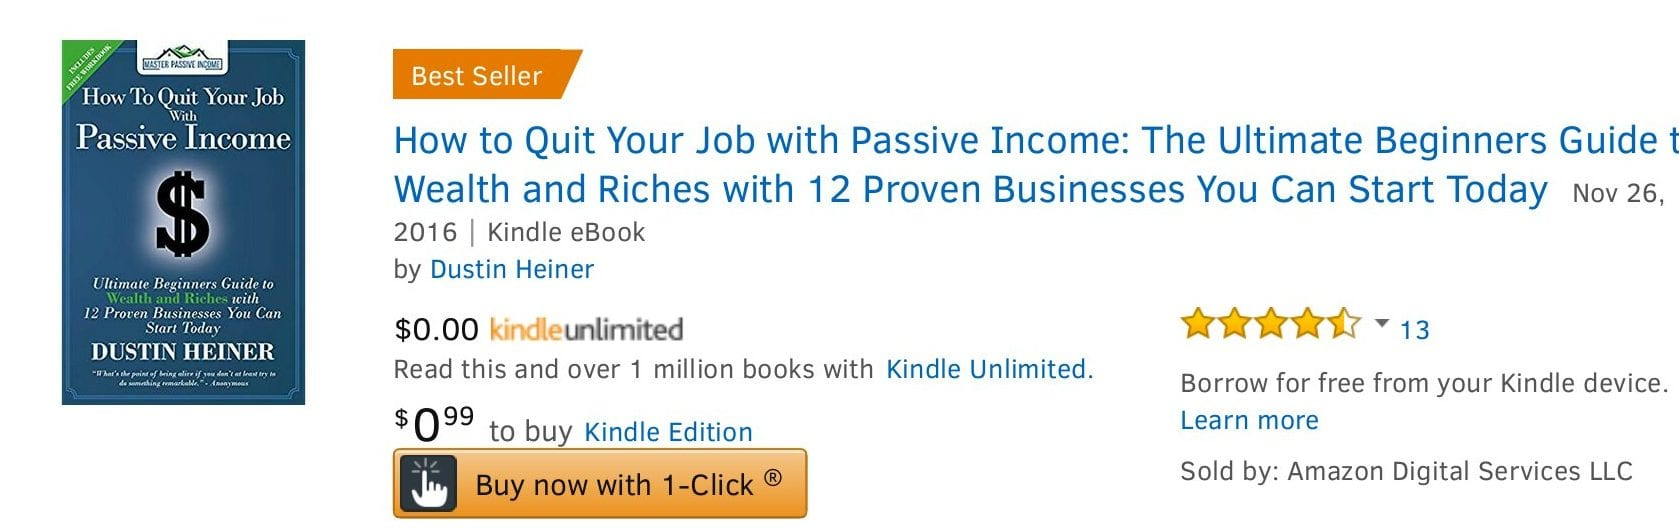 Best Seller Passive Income